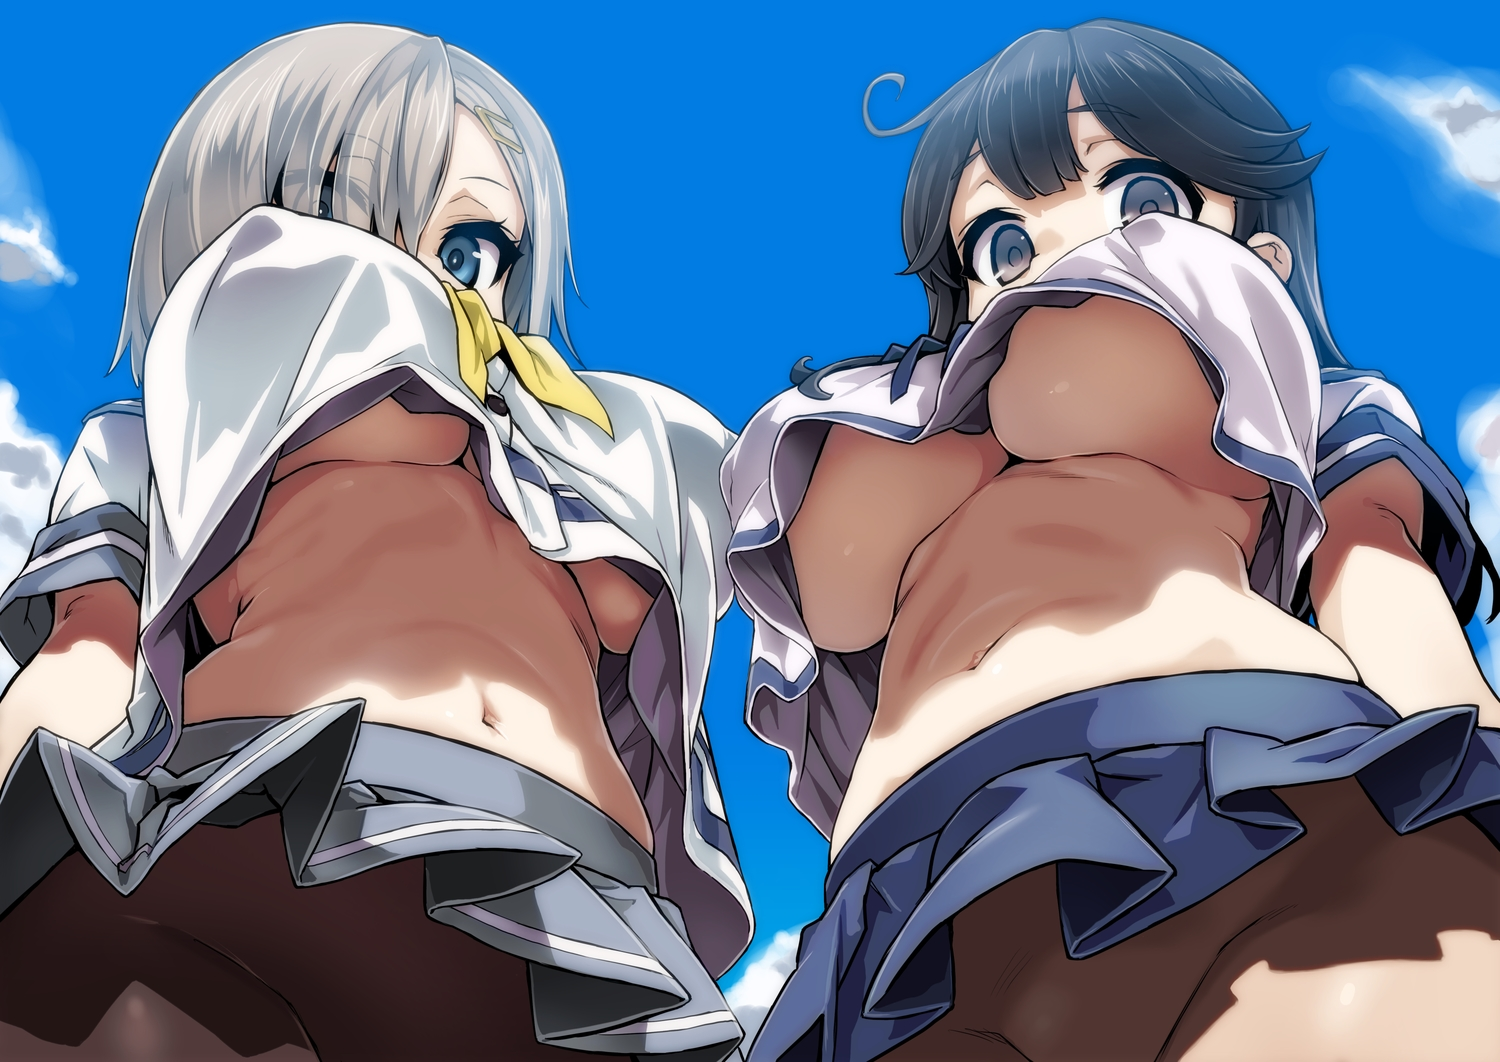 2girls anthropomorphism asanagi breasts erect_nipples hamakaze_(kancolle) kantai_collection navel no_bra nopan pantyhose seifuku skirt underboob upskirt ushio_(kancolle)